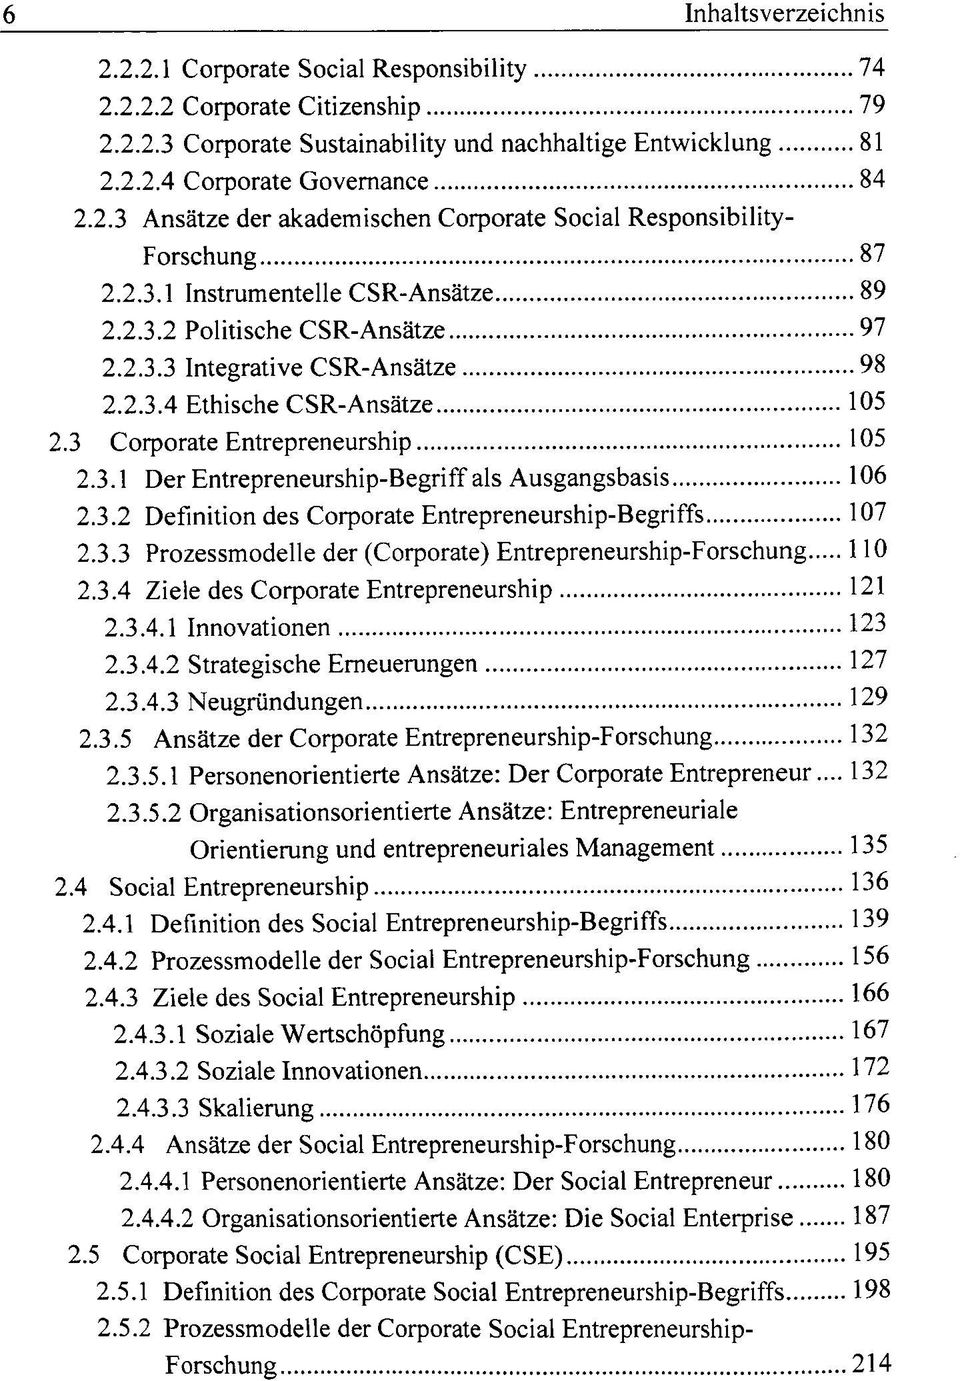 3.2 Definition des Corporate Entrepreneurship-Begriffs 107 2.3.3 Prozessmodelle der (Corporate) Entrepreneurship-Forschung 110 2.3.4 Ziele des Corporate Entrepreneurship 121 2.3.4.1 Innovationen 123 2.